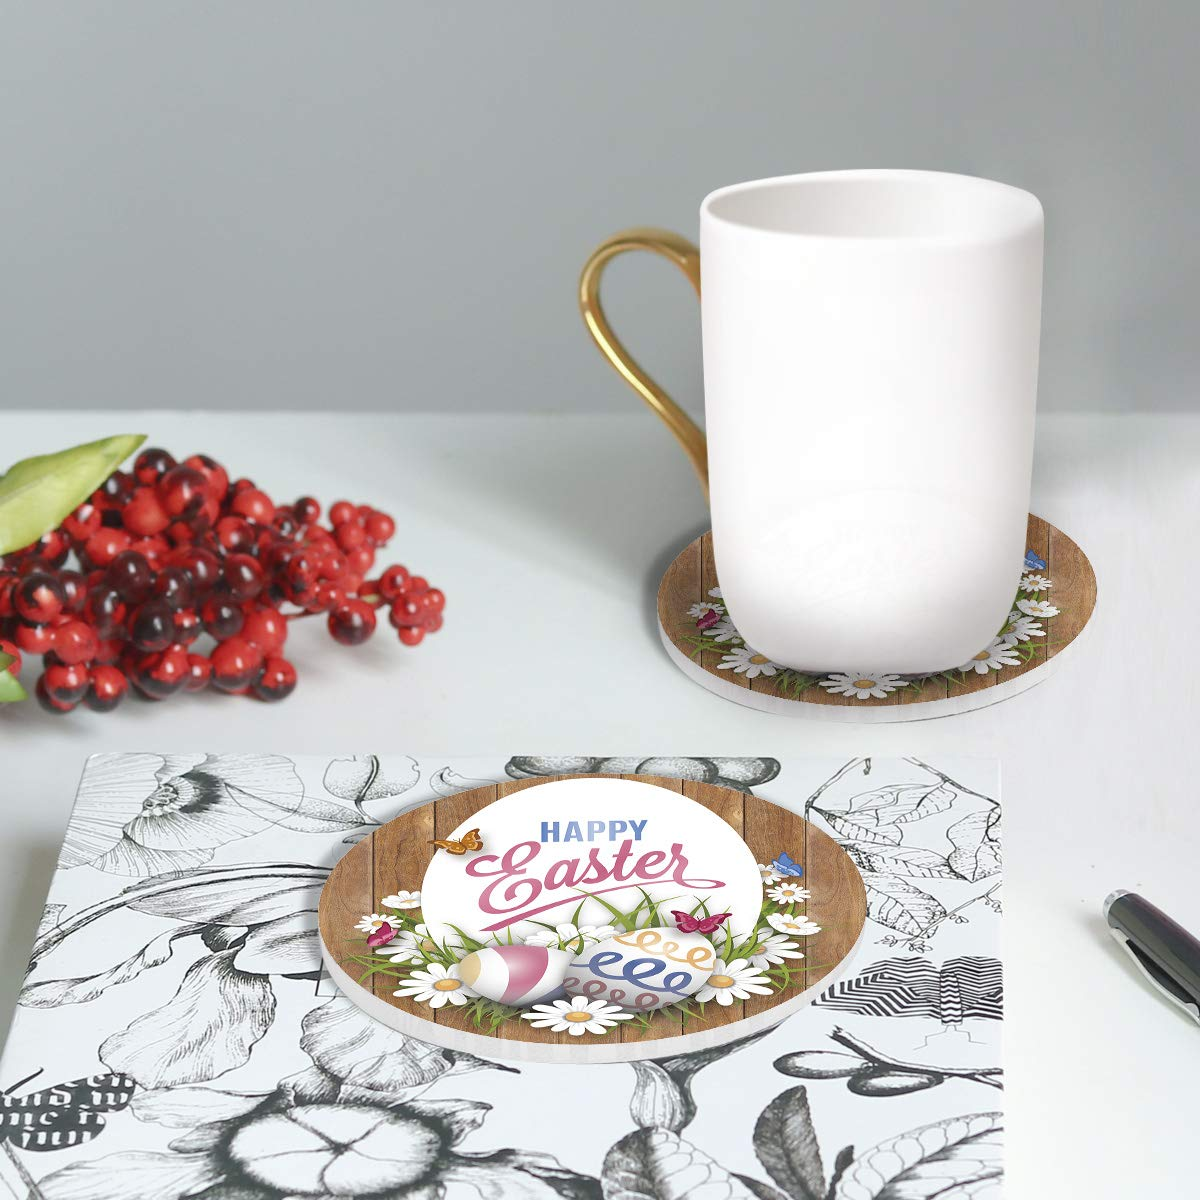 Marks And Scratches Absorbent Coasters for Drinks Galloping White Horse Ceramic Stone with Cork Base Set of 4 No Holder Use as Home Decor and Protect Your Furniture from Water Stains